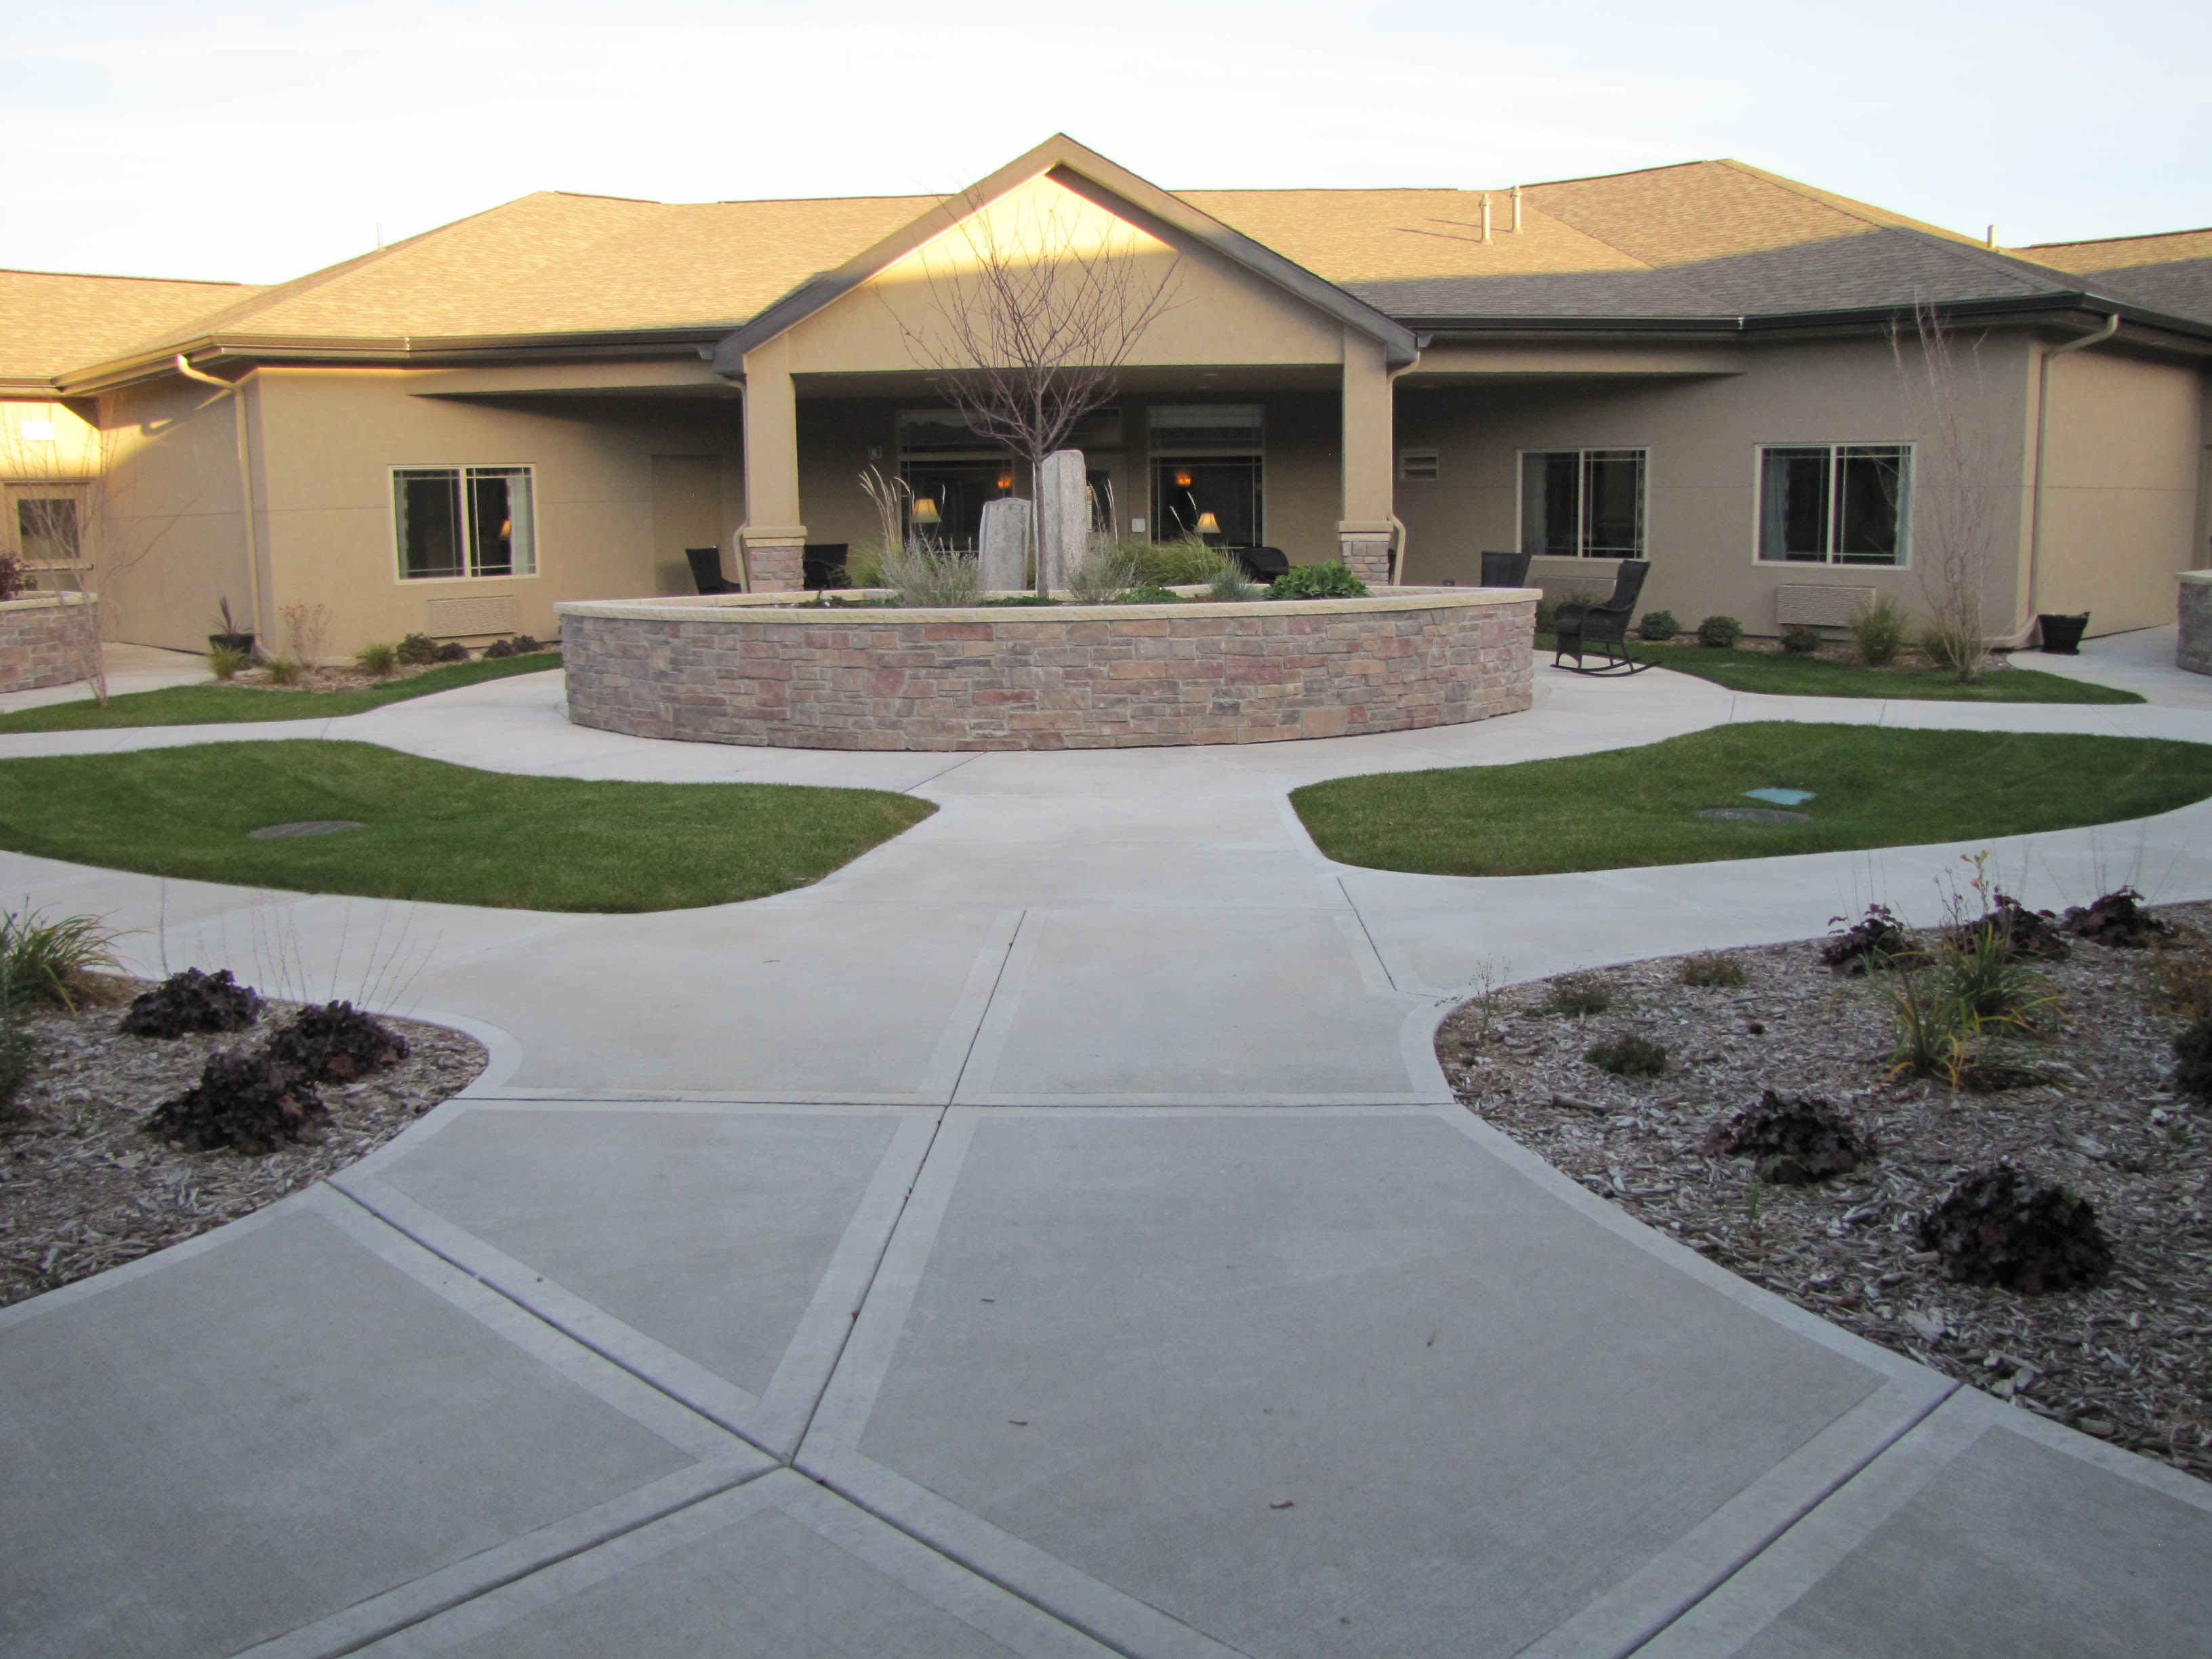 Edgemont Place Alzheimer's Special Care Center offers a spacious outdoors in Blaine, Minnesota